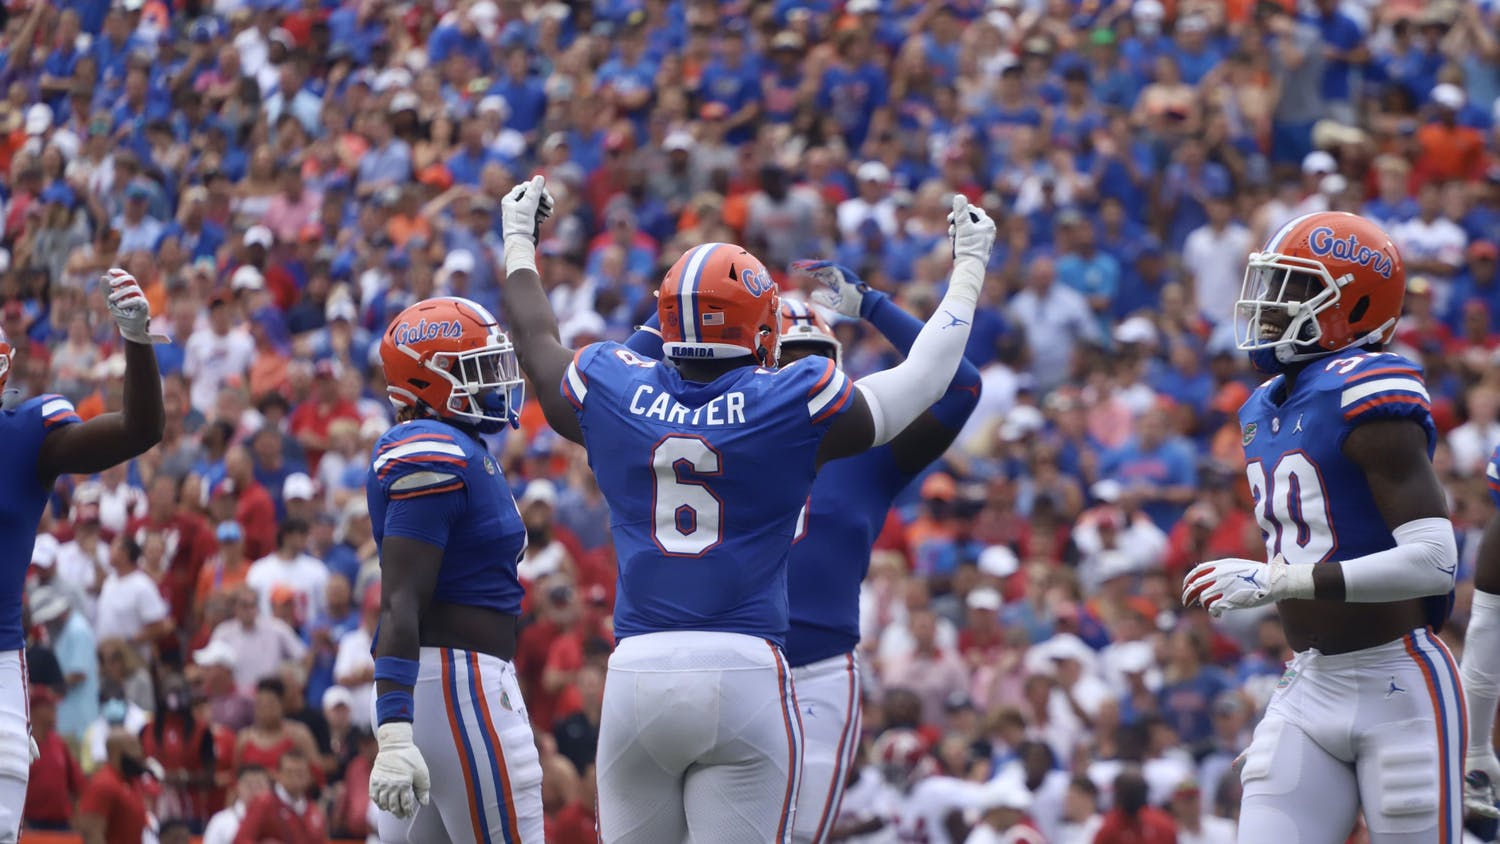 Florida defensive lineman Zachary Carter hypes up the crowd during Florida's 31-29 loss to No. 1 Alabama on Sept. 18.